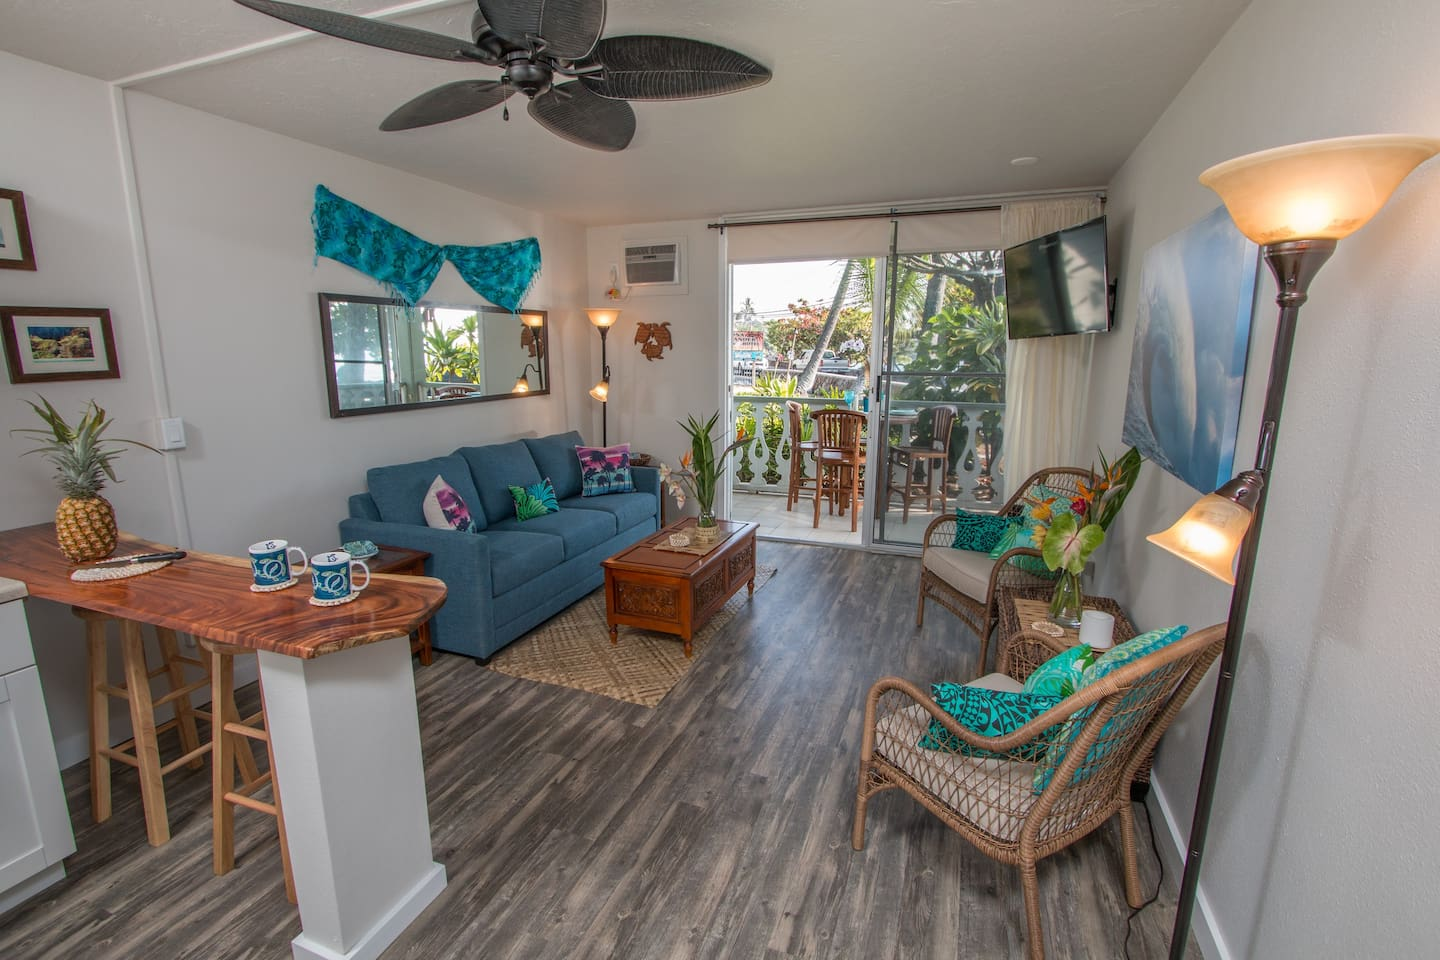 Ocean breezes enhance the natural flow of the interior, accented with blues and greens to organically blend the inside with the magnificent colors outside.